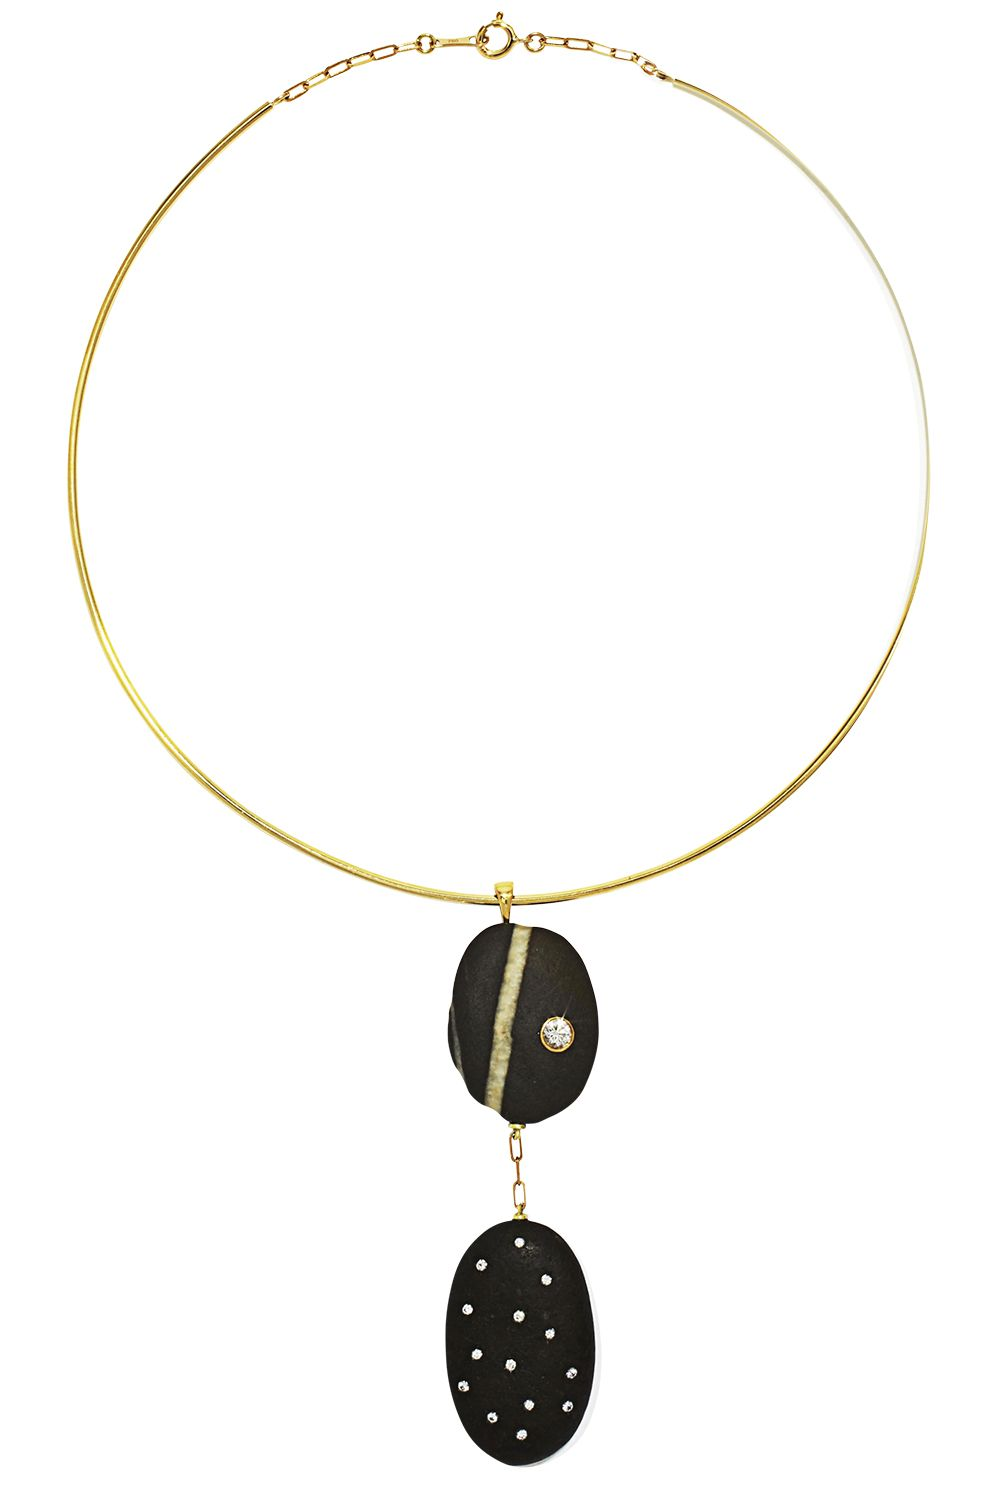 "<p><strong data-redactor-tag=""strong"">CVC Stones</strong> choker, $6,100, <a href=""http://www.modaoperandi.com/"" target=""_blank"">modaoperandi.com</a>.<span class=""redactor-invisible-space"" data-verified=""redactor"" data-redactor-tag=""span"" data-redactor-class=""redactor-invisible-space""></span></p>"